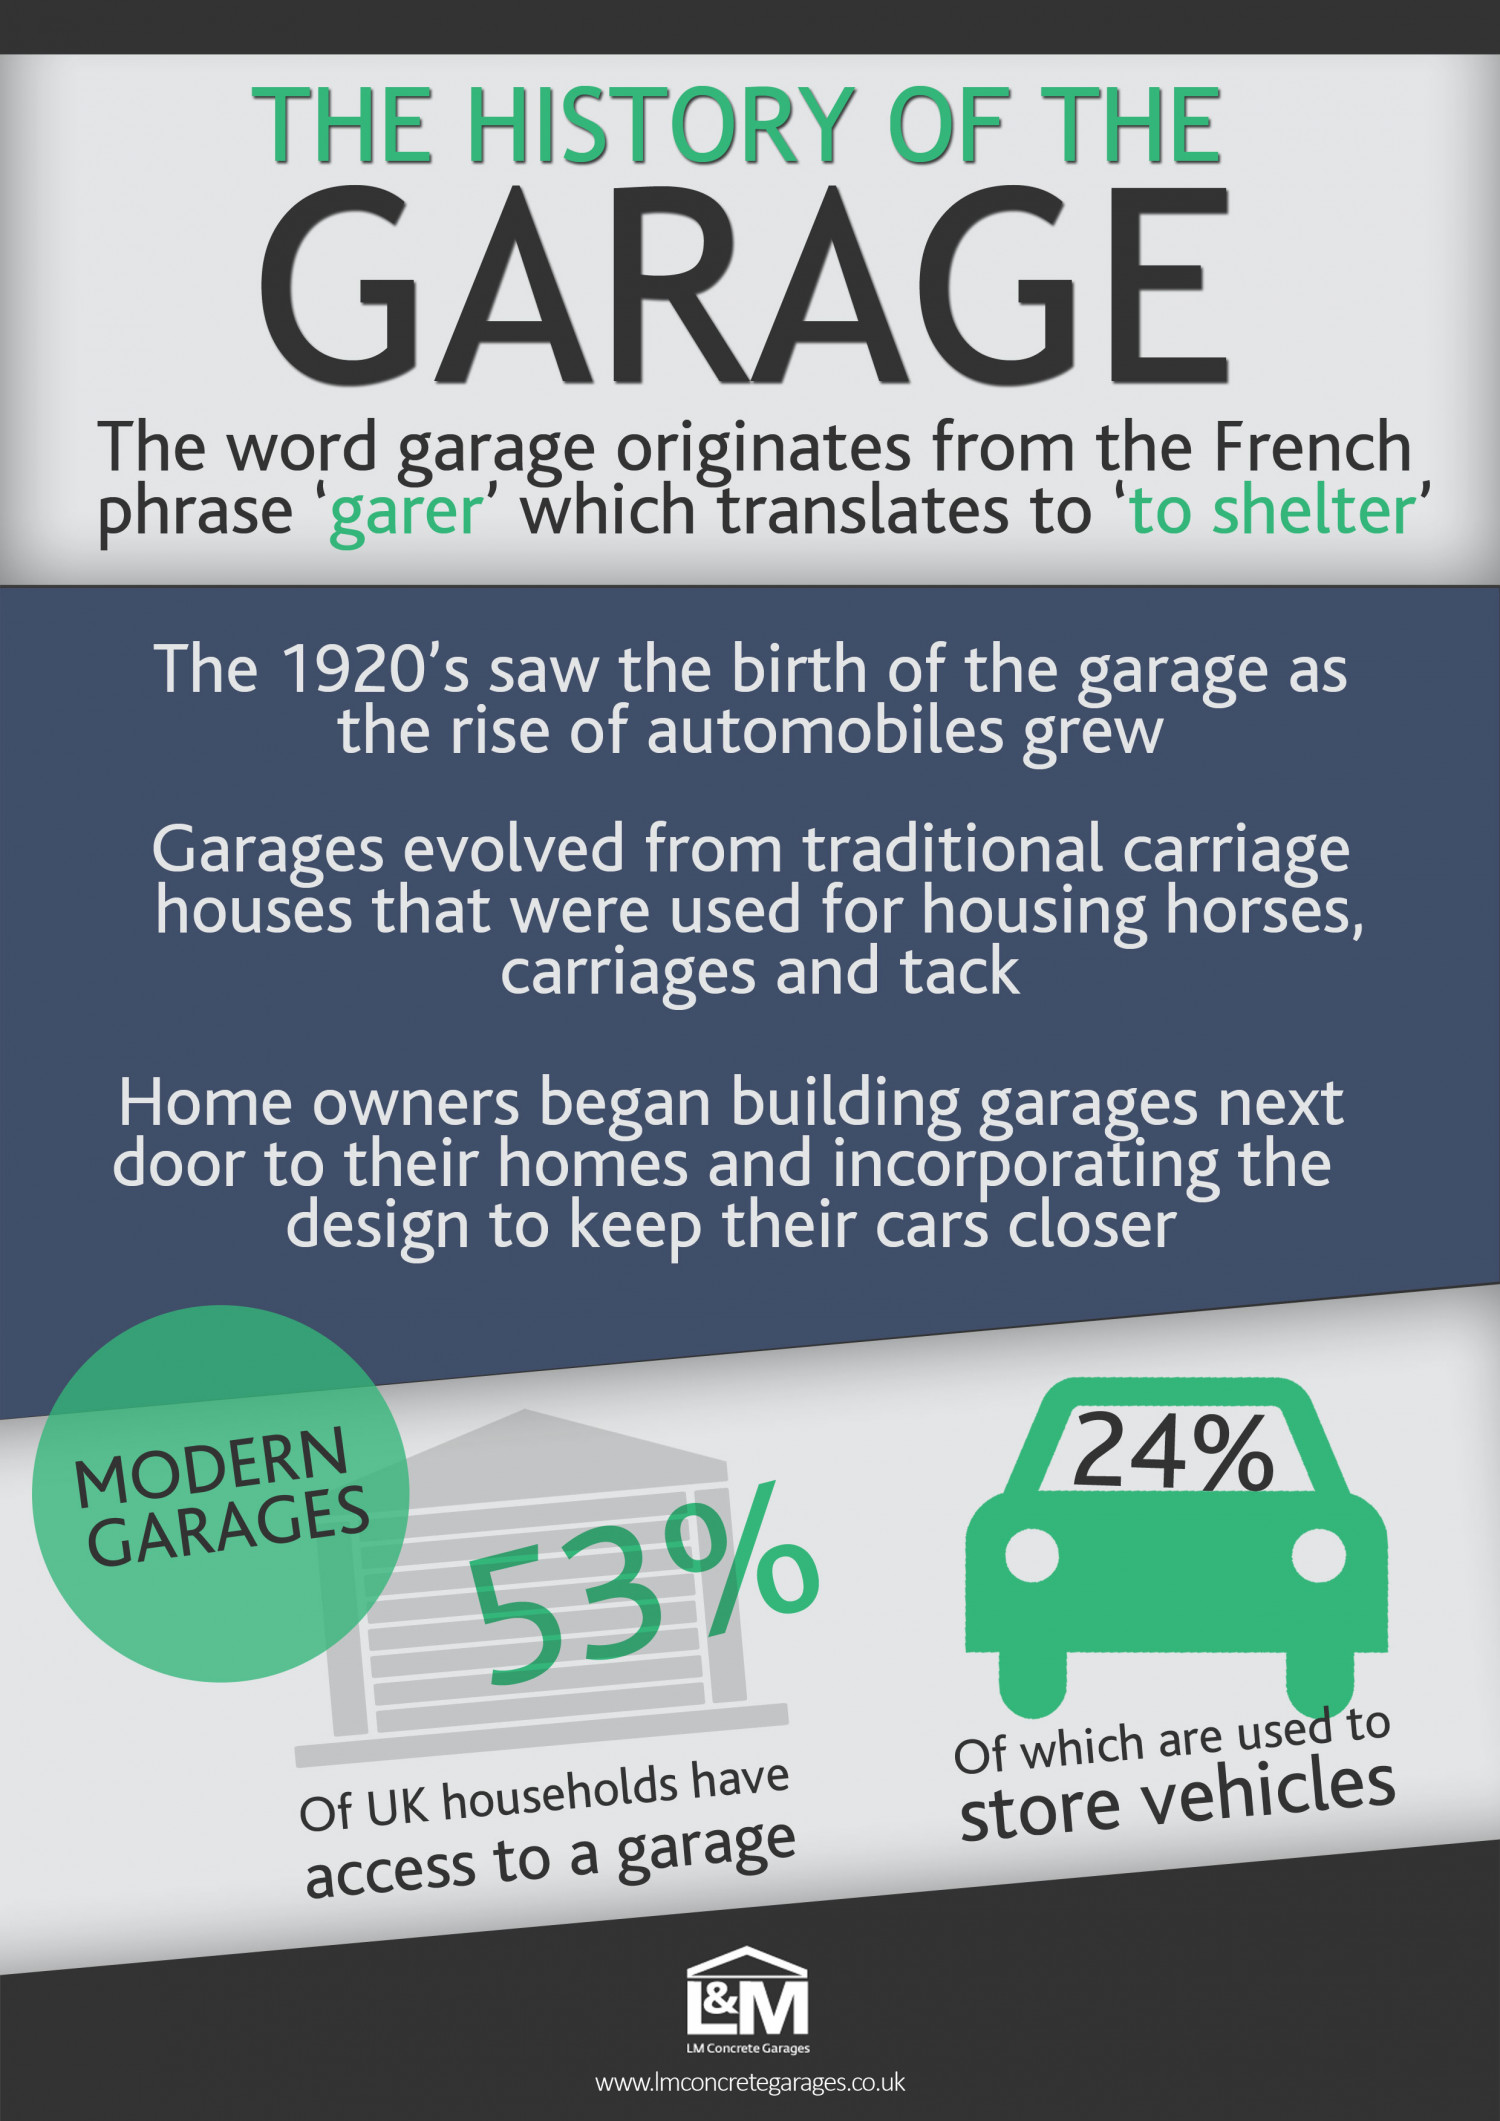 The History of the Garage Infographic